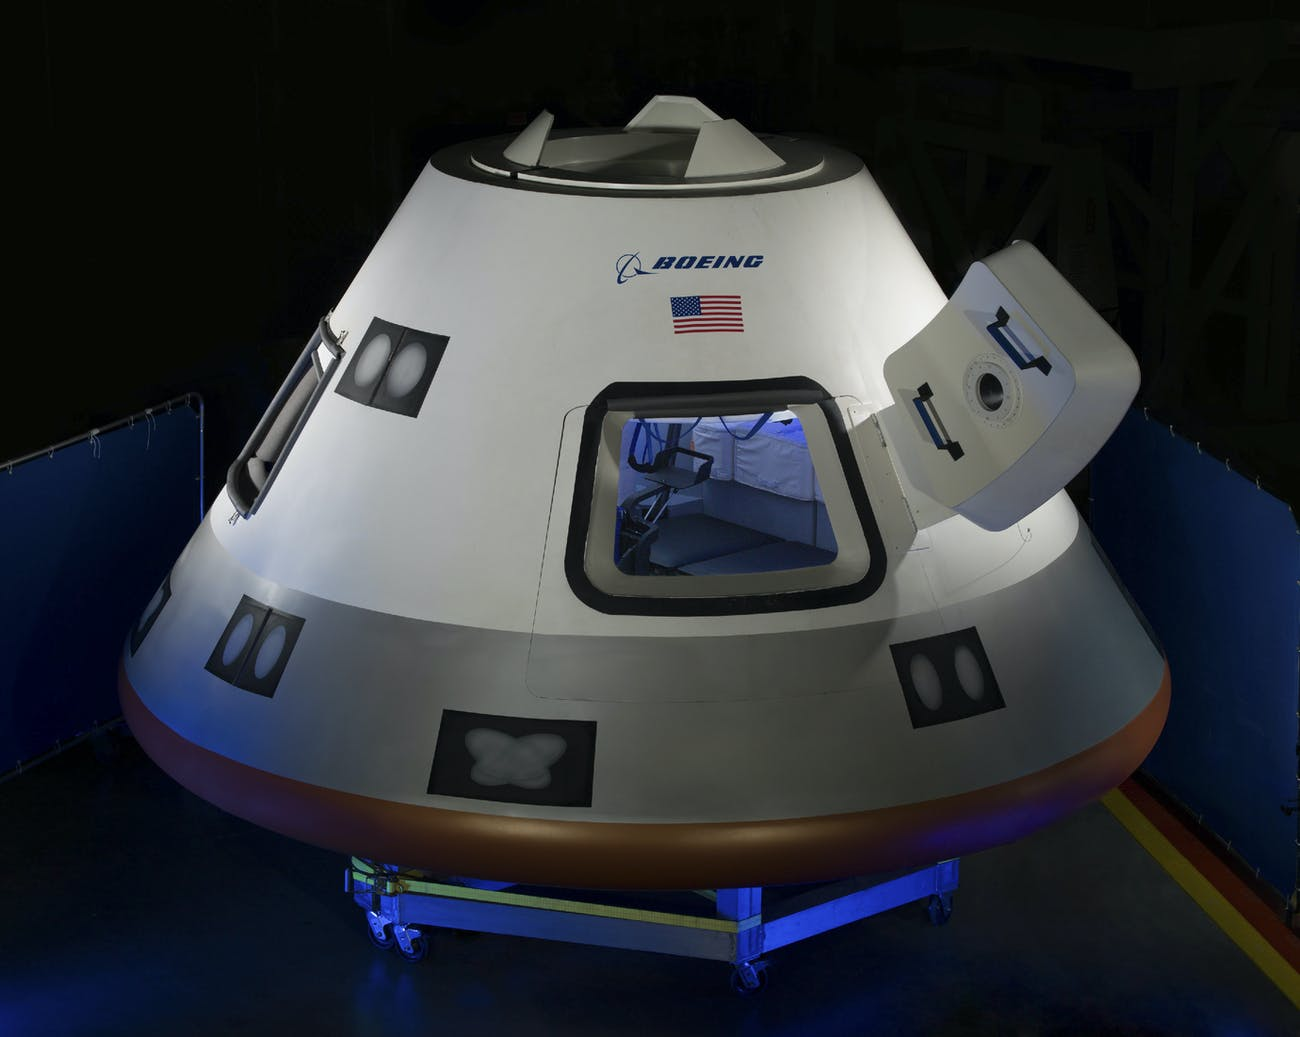 Boeing unveils a mockup of its CST-100 Starliner in July 2013 at the Houston Product Support Center in Texas. Six years after this design was unveiled, it still has yet to fly any humans.